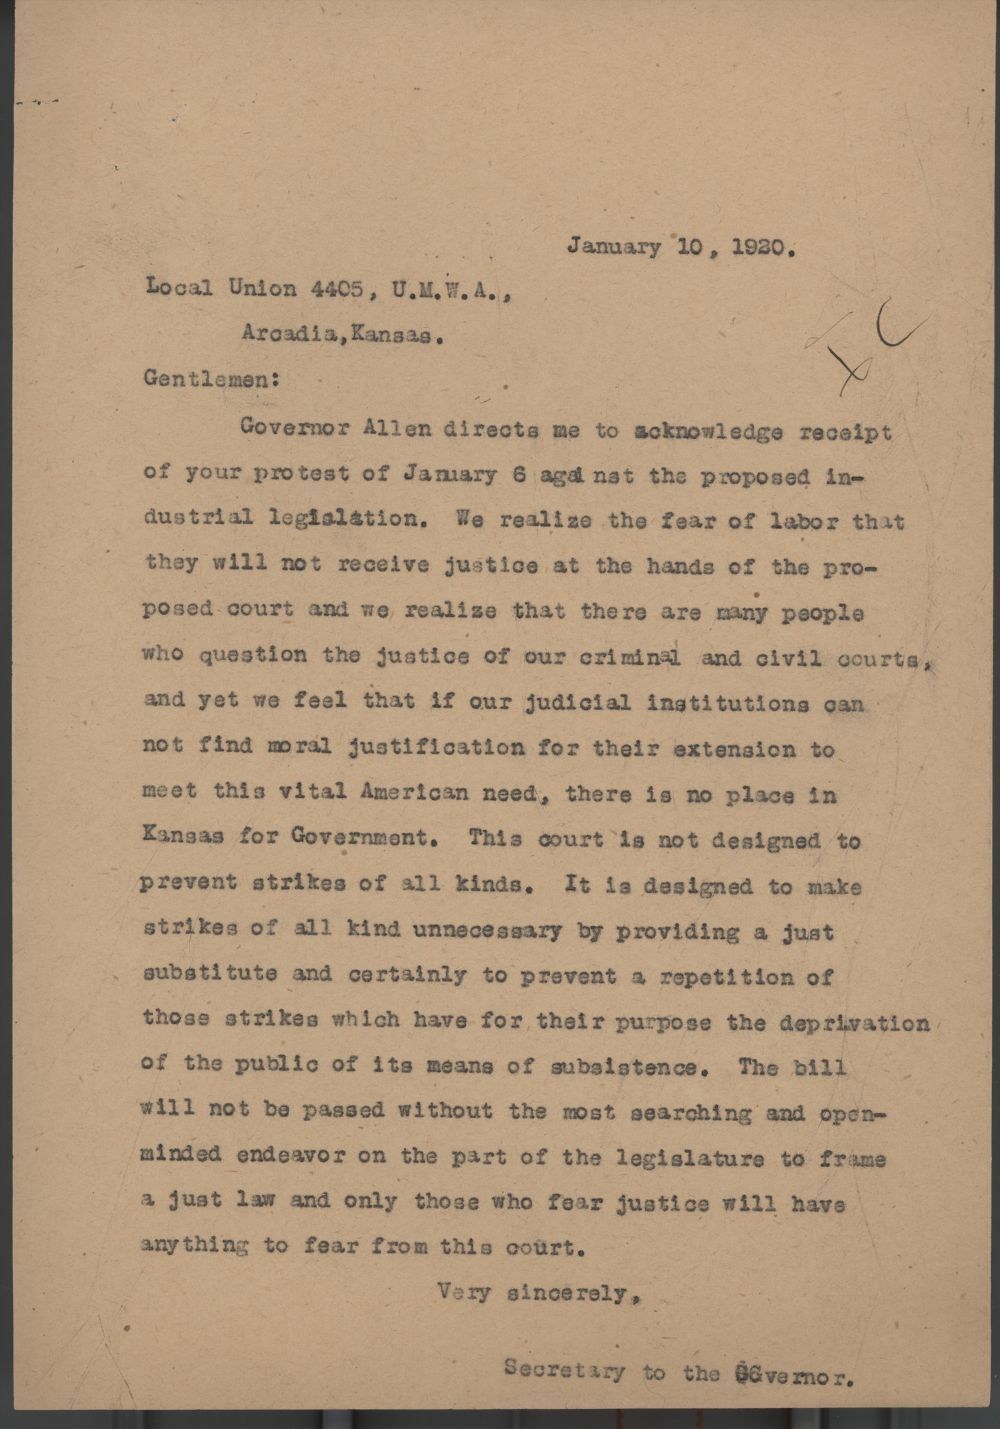 Secretary to Governor Henry J. Allen to Local Union 4405, United Mine Workers Association